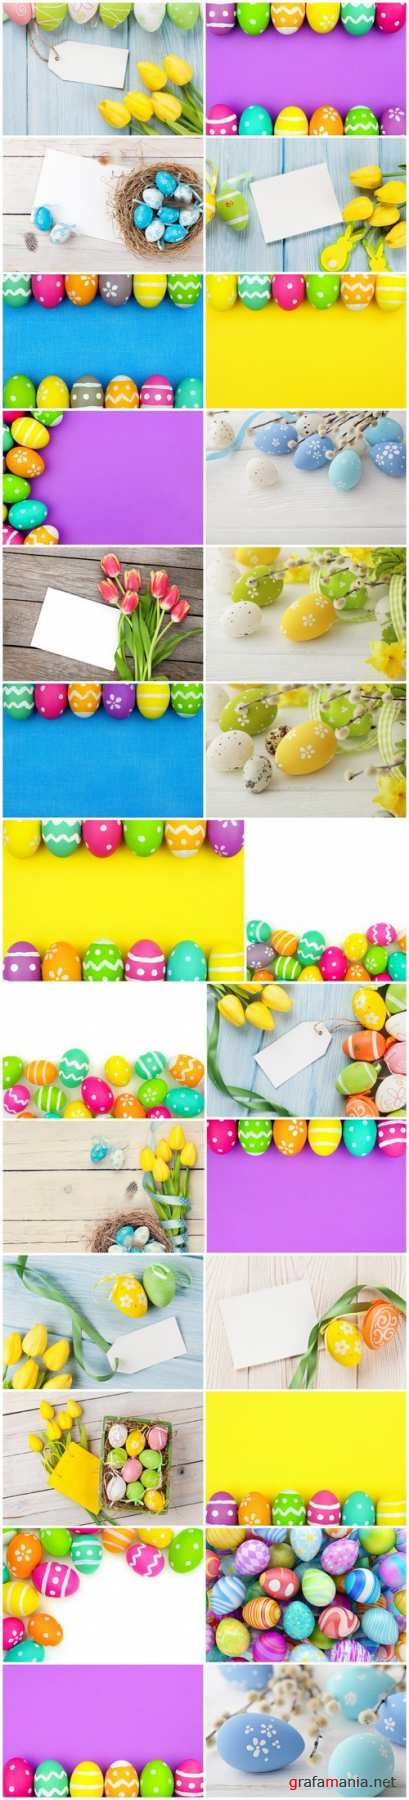 Easter Eggs and Happy Easter - Set of 26xUHQ JPEG Professional Stock Images